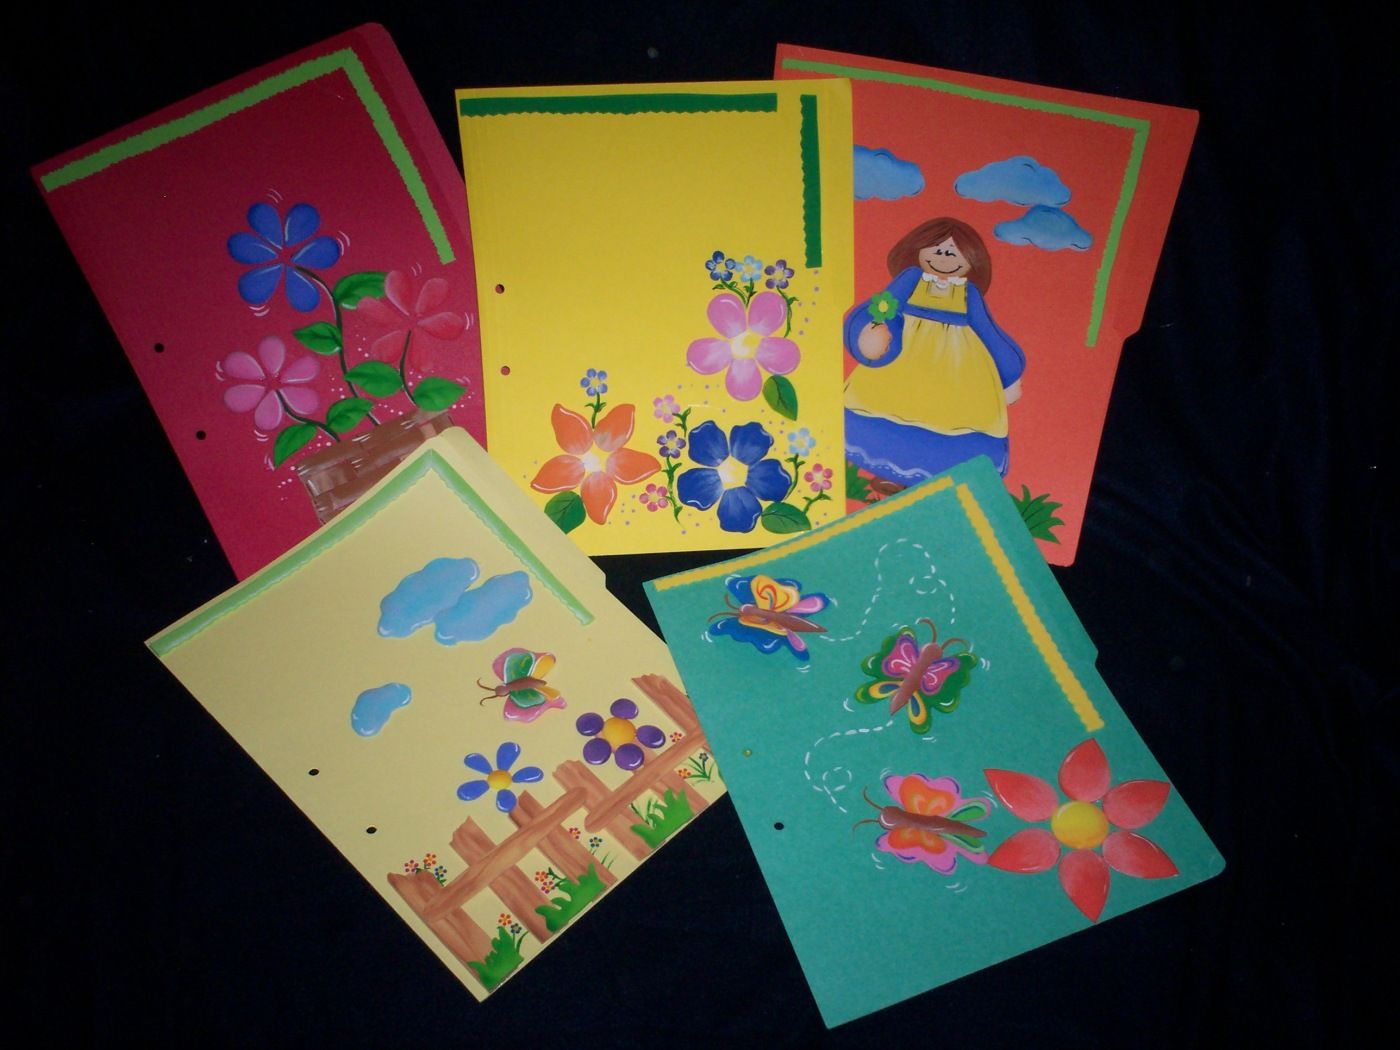 Como Decorar Una Carpeta Para Niños Como Decorar Carpetas Imagui Manuualidades Cards Y Playing